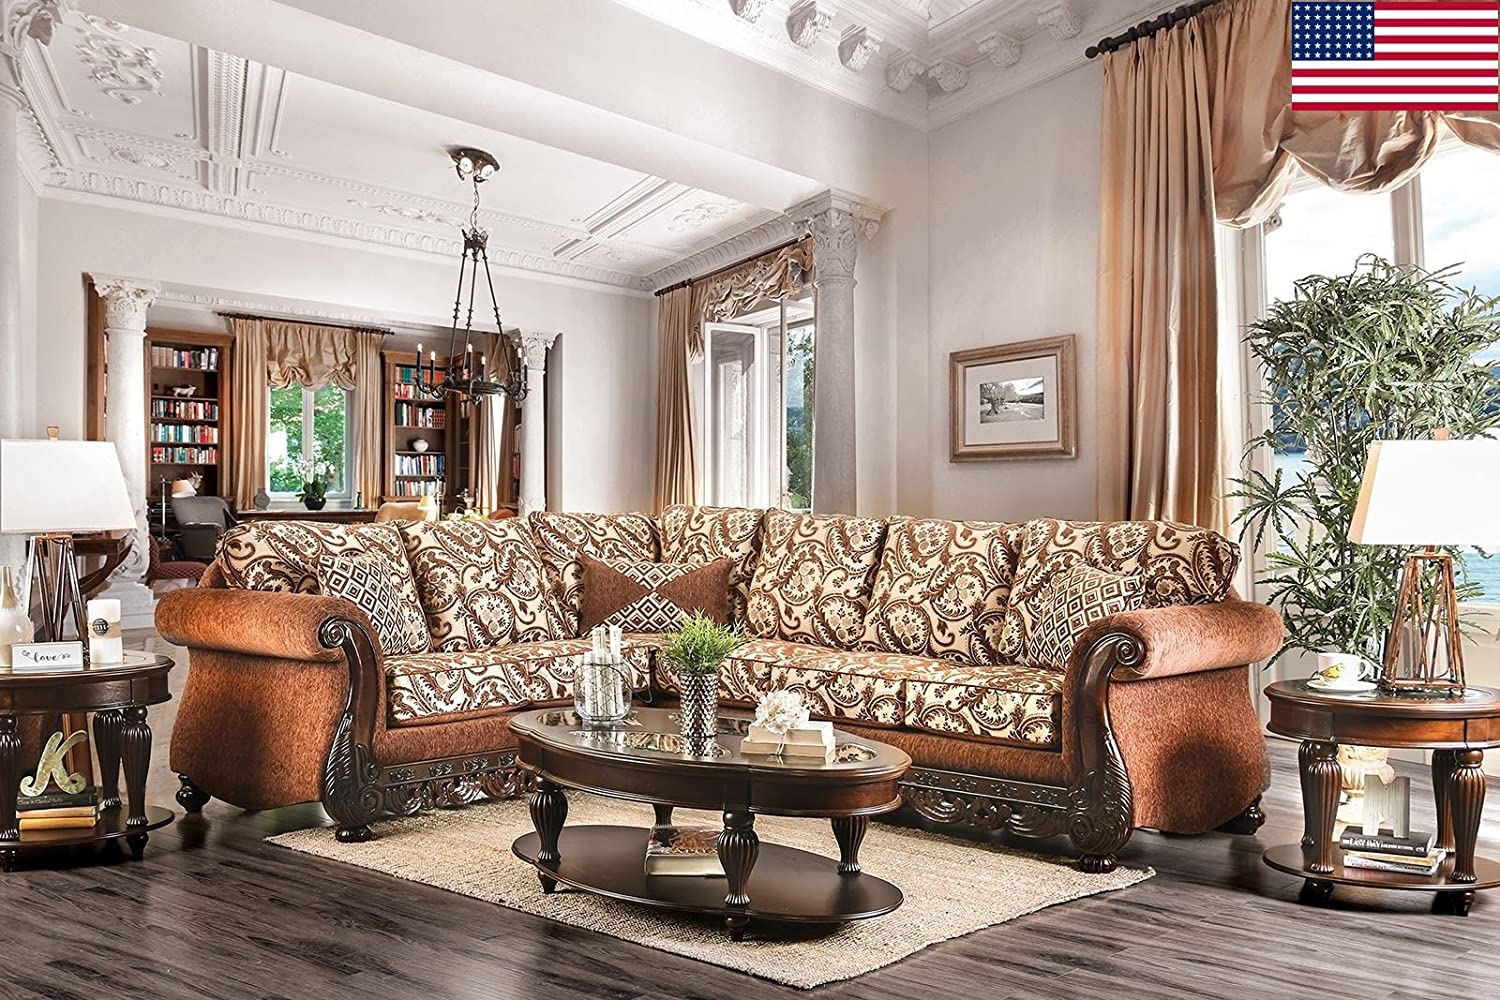 Amazon com esofastore formal traditional living room sectional sofa set rolled arms intricate wood trim brown color chenille fabric cushion couch accent